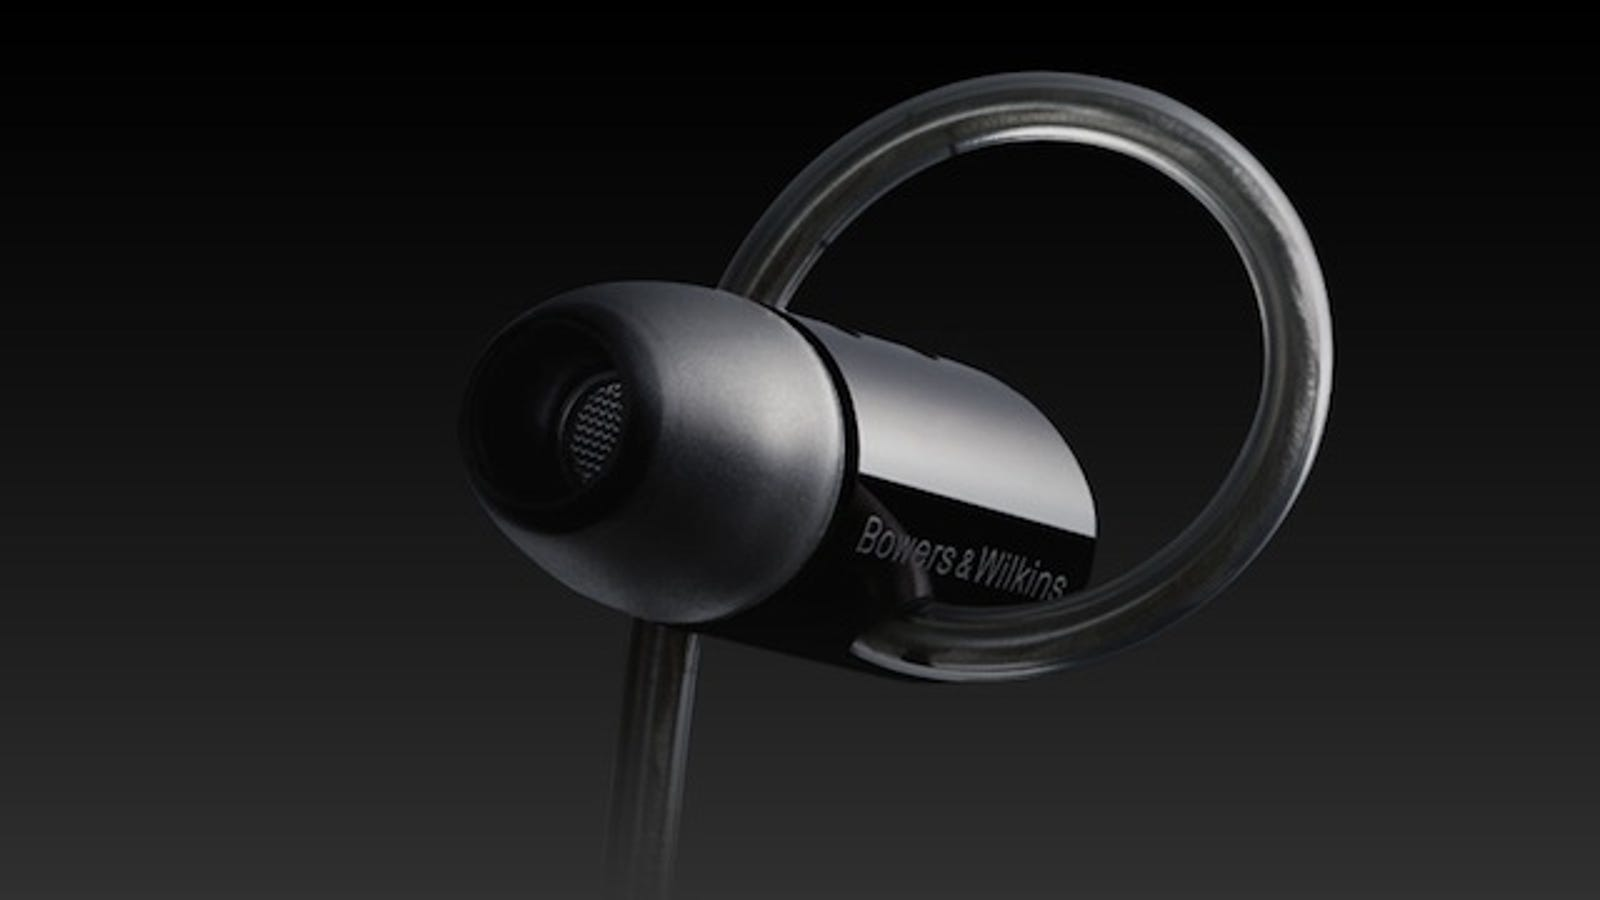 sweatproof earbuds for running